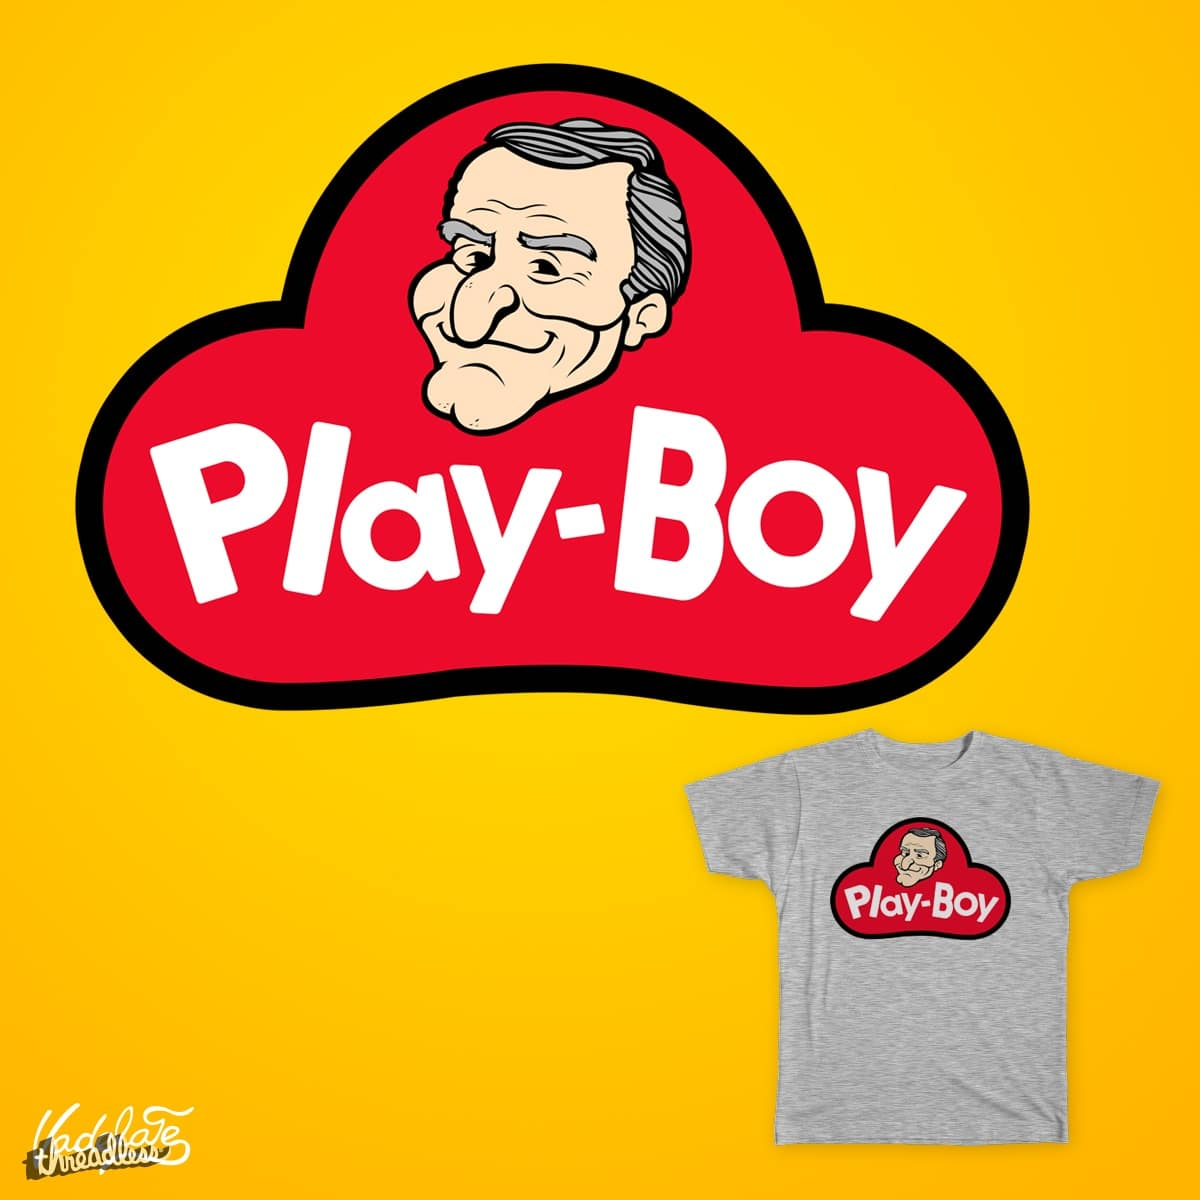 Play-Boy by vadelate on Threadless